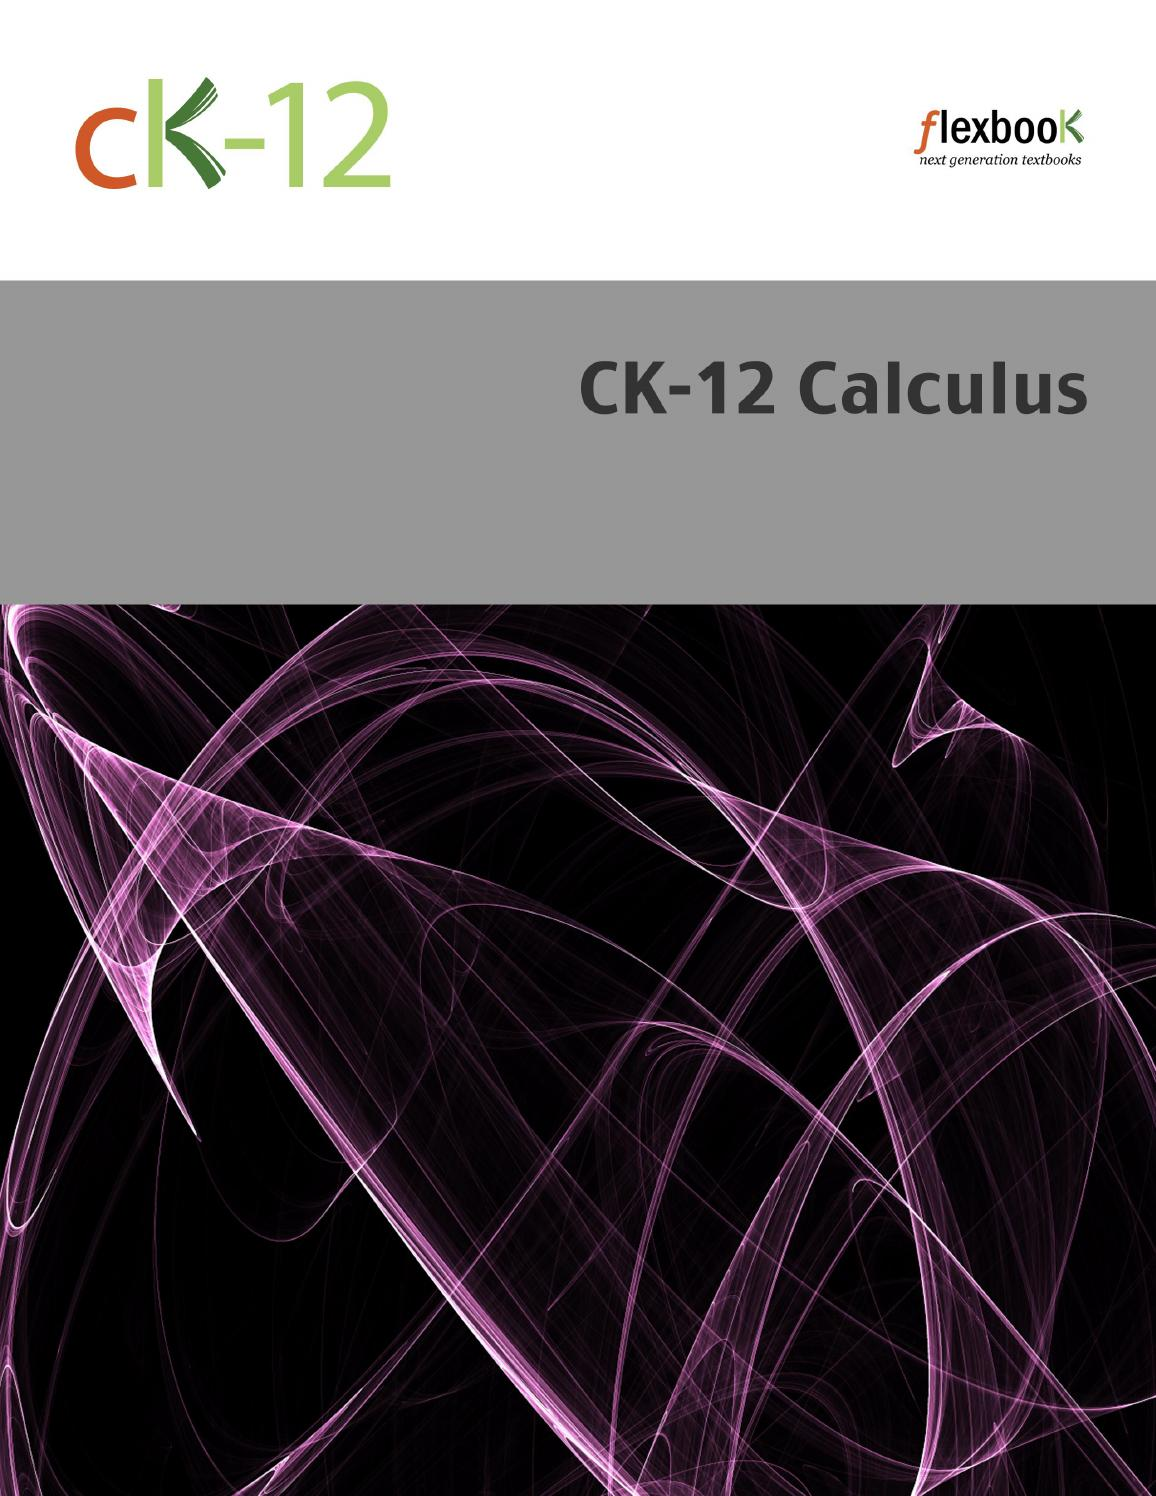 Ck 12 calculus b v4 ykt s1 by book worm issuu fandeluxe Gallery